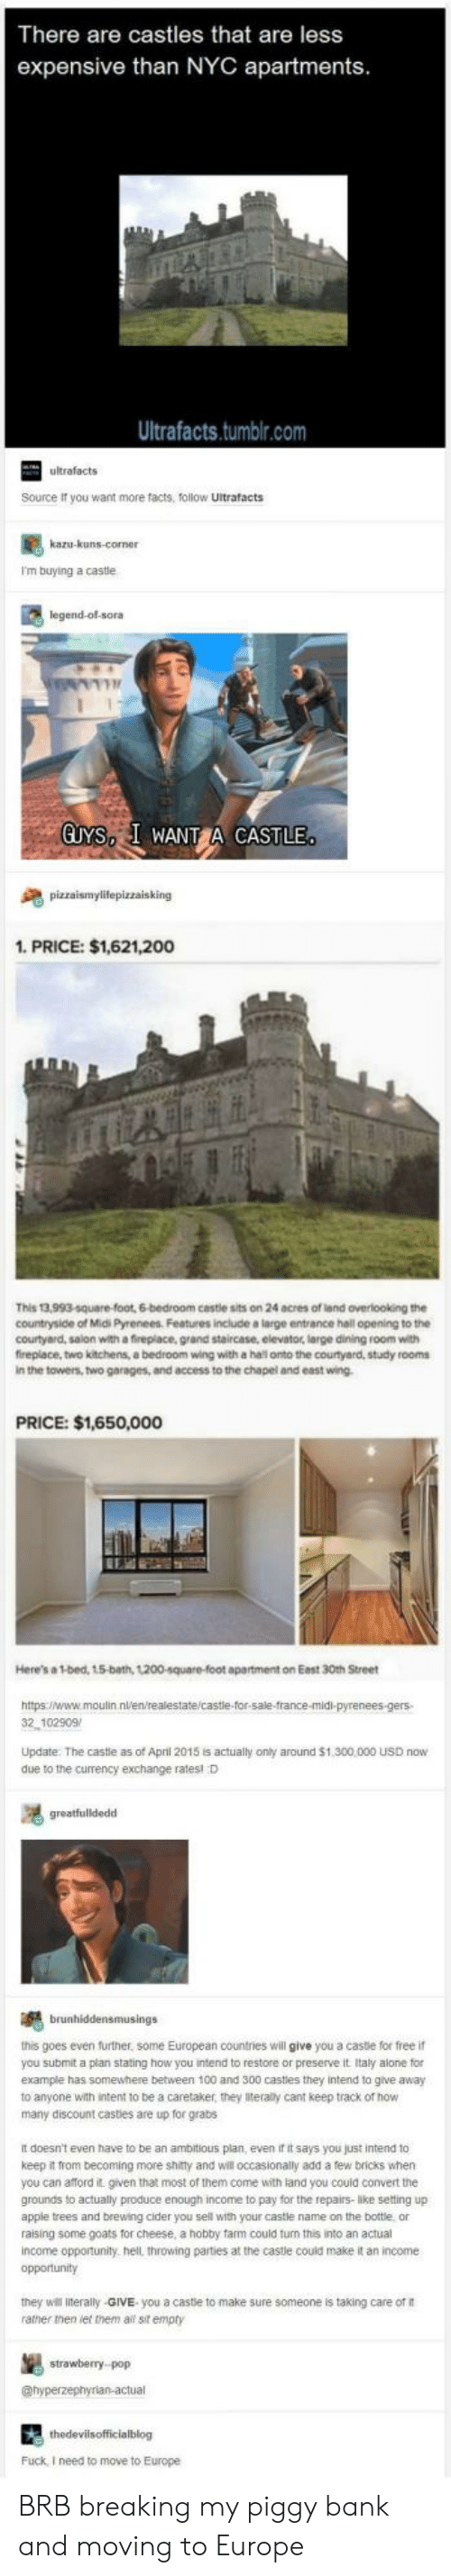 sora: There are castles that are less  expensive than NYC apartments  Ultrafacts.tumblr.com  ultrafacts  Source it you want more facts, follow Ultrafacts  I'm buying a castle  legend-ol-sora  GUYS I WANT CASTLE  1. PRICE: $1,621,200  This 13,993-square-foot, 6-bedroom cestle sits on 24 acres of land overlooking the  countryside of Midi Pyrenees. Features include a large entrance hall opening to the  courtyard, salon with a fireplace, grand staircase, elevator, large dining room with  fireplace, two kitchens, a bedroom wing with a hal onto the courtyard, study rooms  in the towers, two garages, and access to the chapel and east wing  PRICE: $1,650,000  Here's a 1-bed, 15-bath, 1200-square-foot apartment on Eest 30th Street  2 102909  Update The castle as of April 2015 is actualy only around $1,300,000 USD now  due to the currency exchange ratesl D  this goes even further, some European countries will give you a castle for free if  you submit a plan stating how you intend to restore or preserve it Italy alone for  example has somewhere between 100 and 300 castles they intend to give away  to anyone with intent to be a caretaker, they iteraly cant keep track of how  many discount casties are up for grabs  It doesn't even have to be an ambitious plan, even it it says you just intend to  keep it from becoming more shitty and will occasionally add a few bricks when  you can aford it. given that most of them come with land you could convert the  grounds to actually produce enough income to pay for the repairs-like setting up  apple trees and brewing cider you sell with your castle name on the bottle or  raising some goats for cheese, a hobby farm could turn this into an actual  income opportunity. hell, throwing parties at the caste could make it an income  opportunity  they will literally-GIVE you a caste to make sure someone is taking care of  ramer men let them a sit empty  stowebery  Fuck, I need to move to Europe BRB breaking my piggy bank and moving to Europe